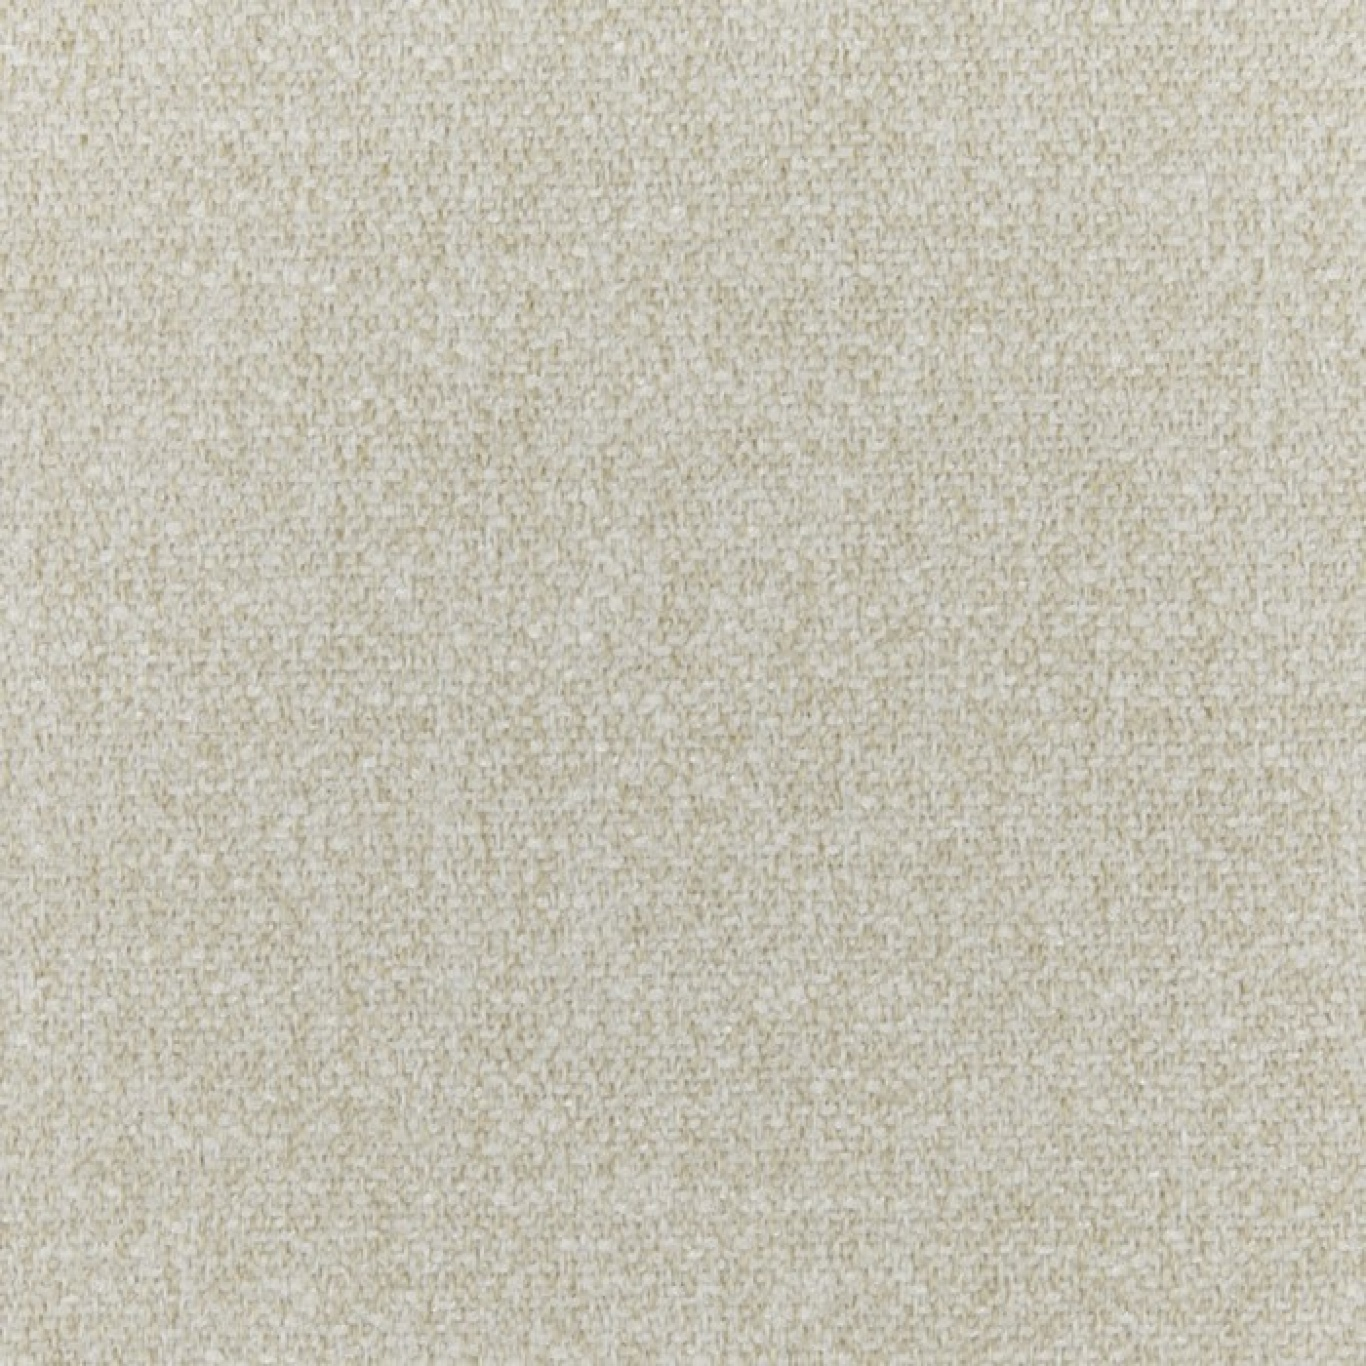 Image of Prestigious Harrison Natural Fabric